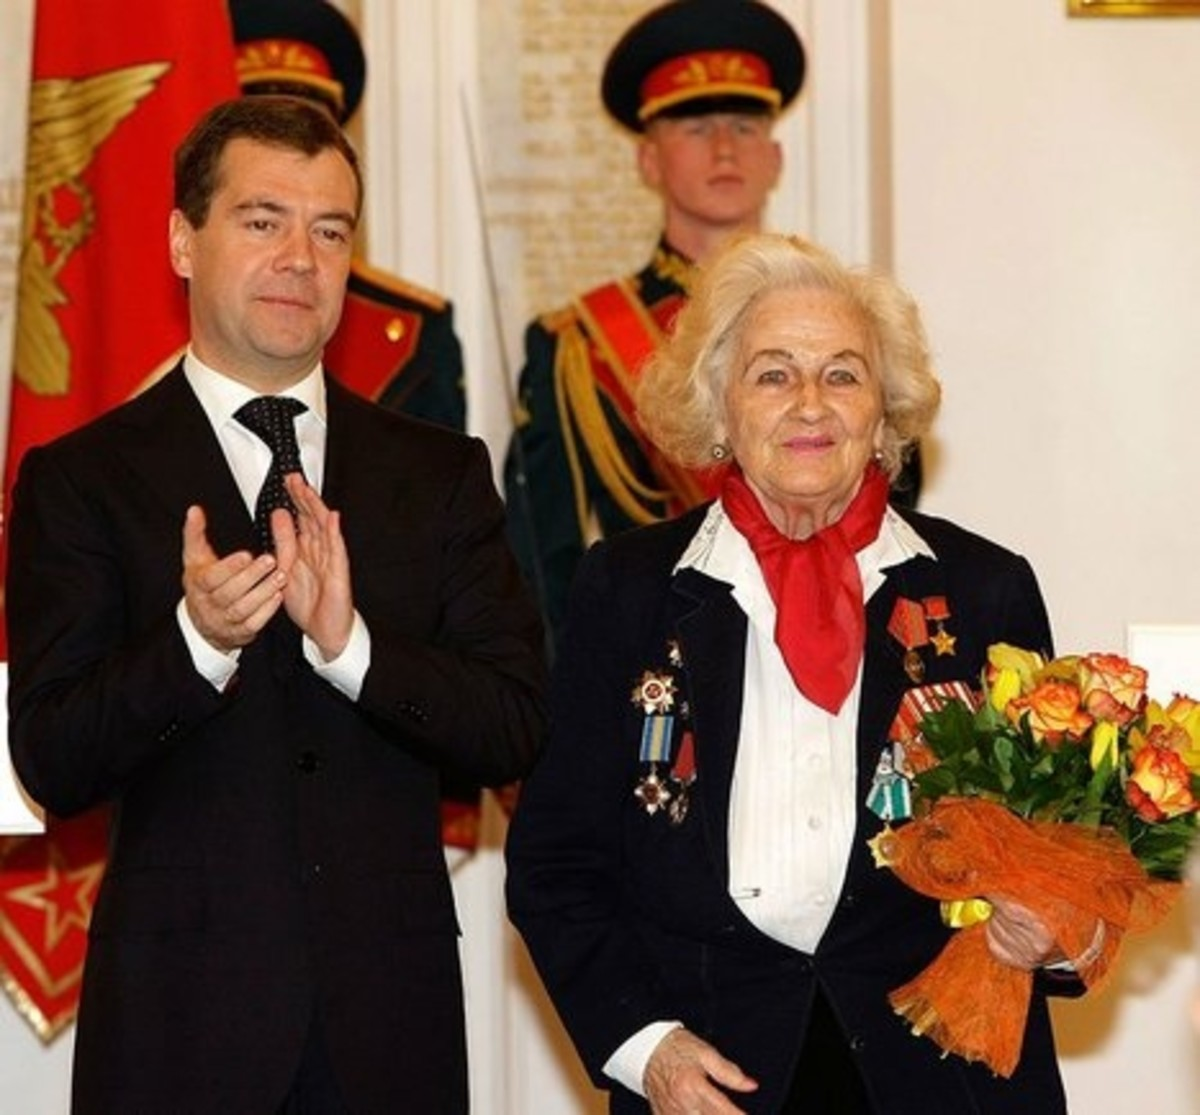 WW2: Nadezhda Popova. As a Night Witch she was shot down several times. She flew 18 missions in one night. Standing with Russian president Medvedev in 2009